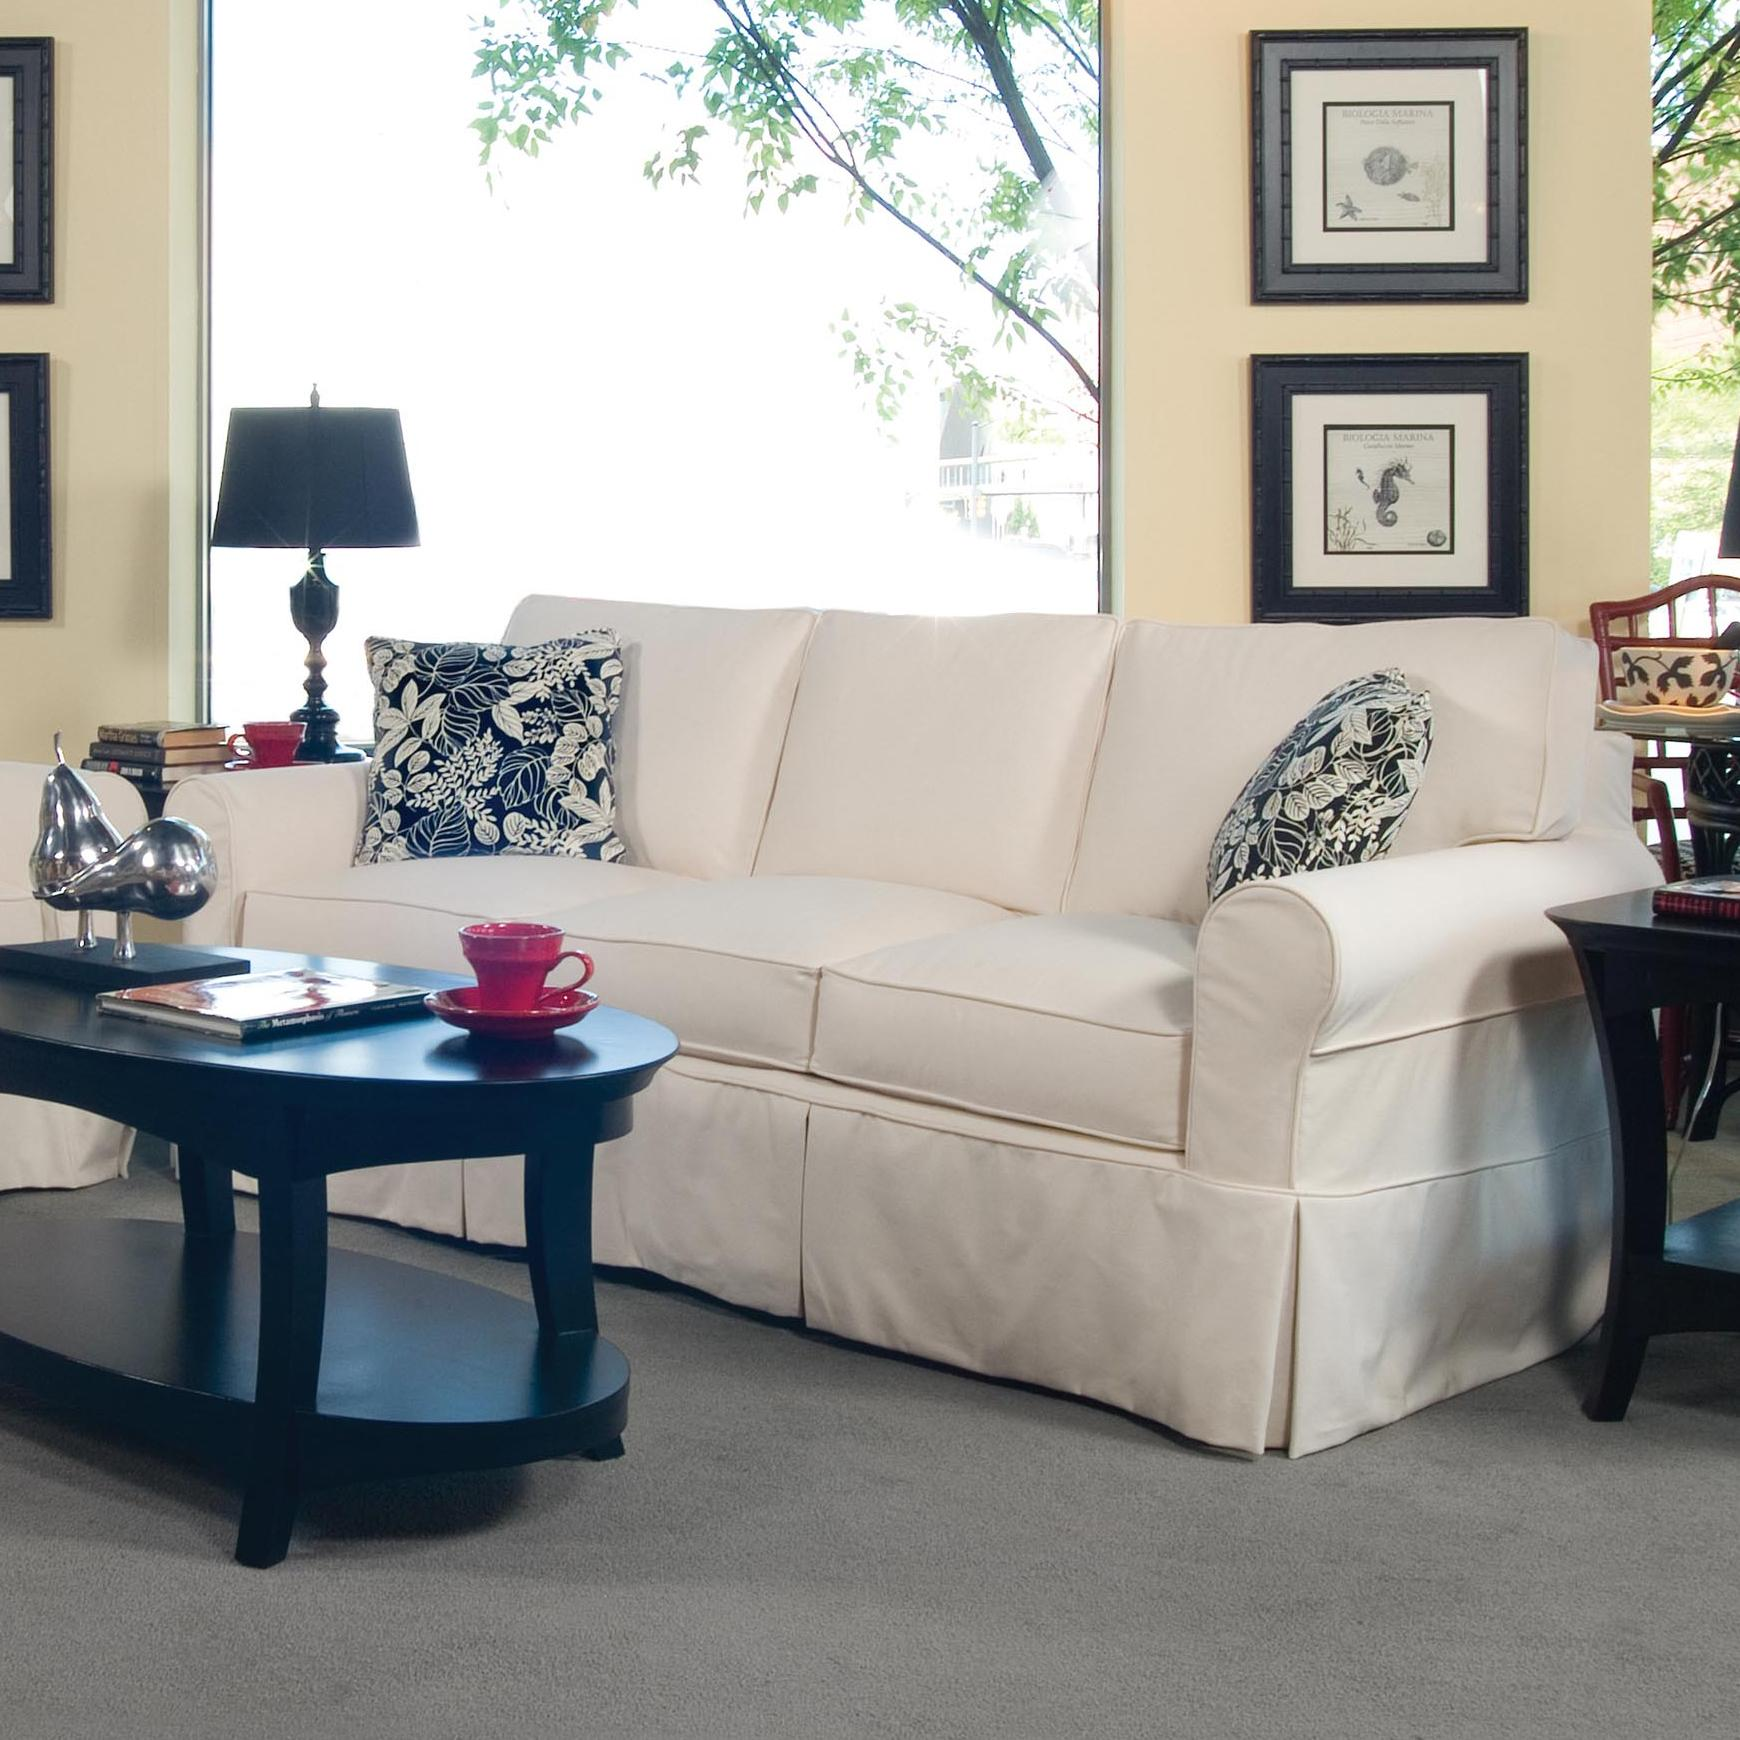 728 3-Seater Stationary Sofa with Slipcover by Braxton Culler at Powell's Furniture and Mattress